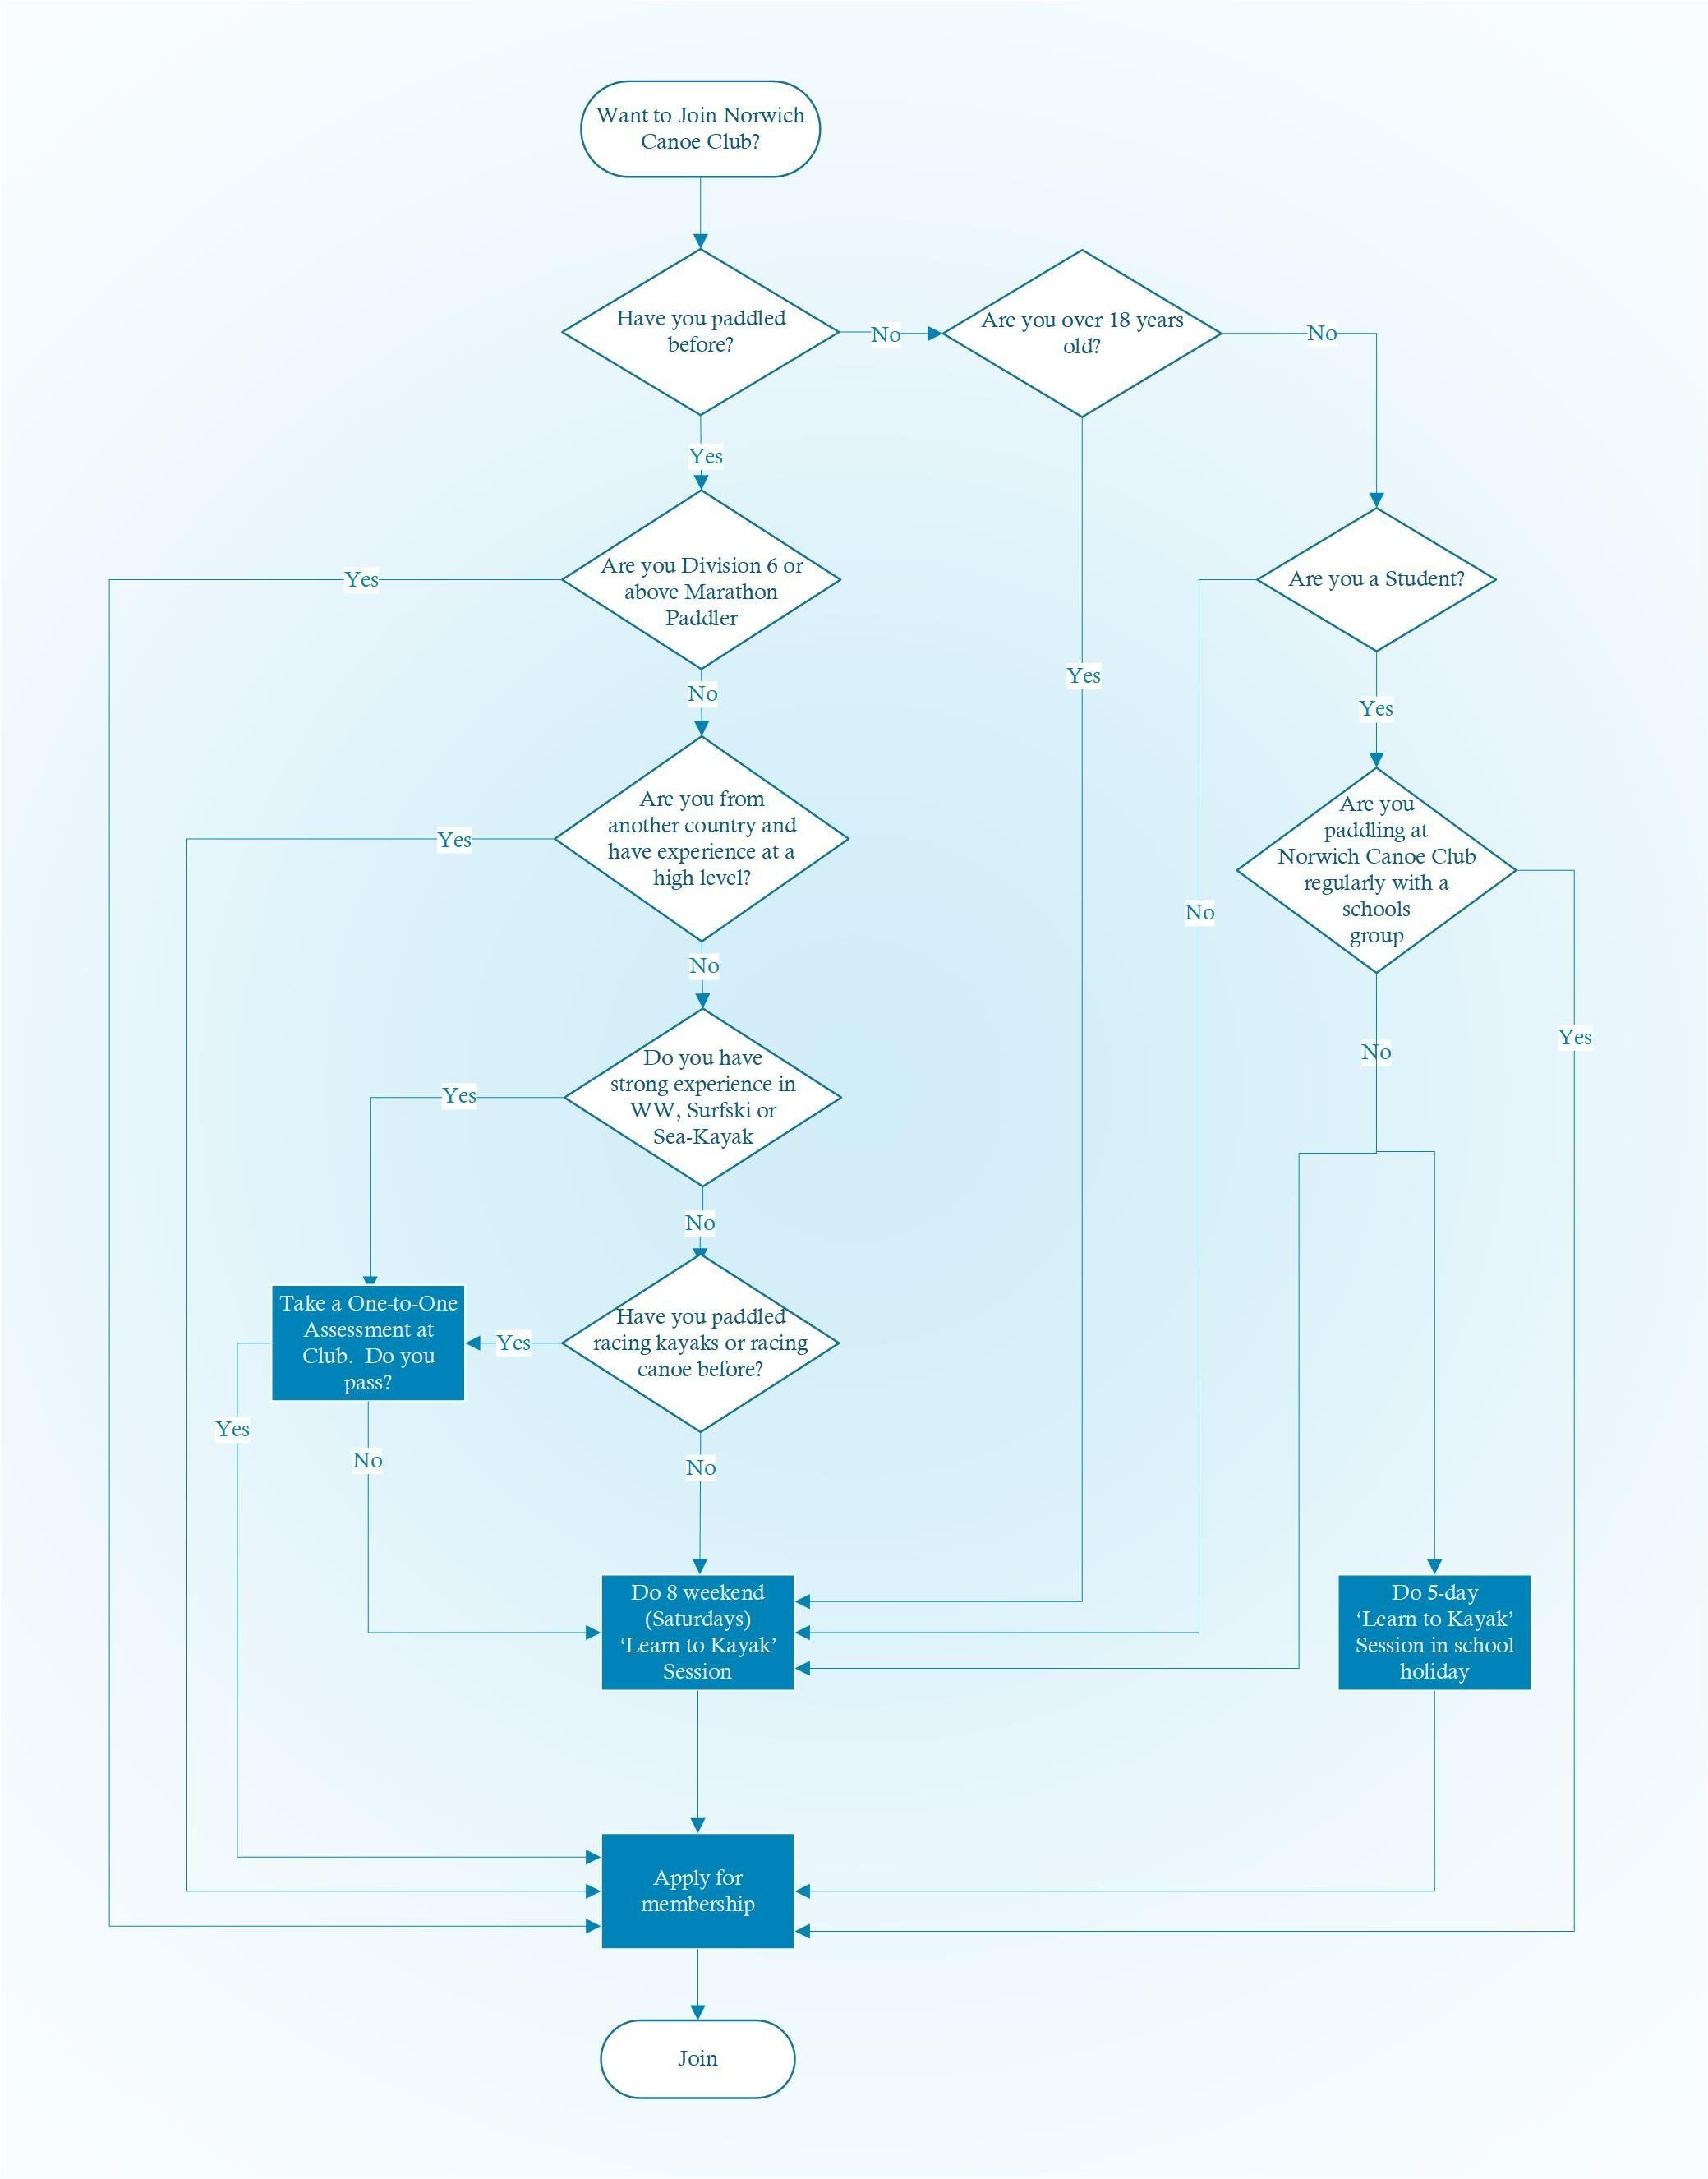 Membership flow diagram for Norwich Canoe Club